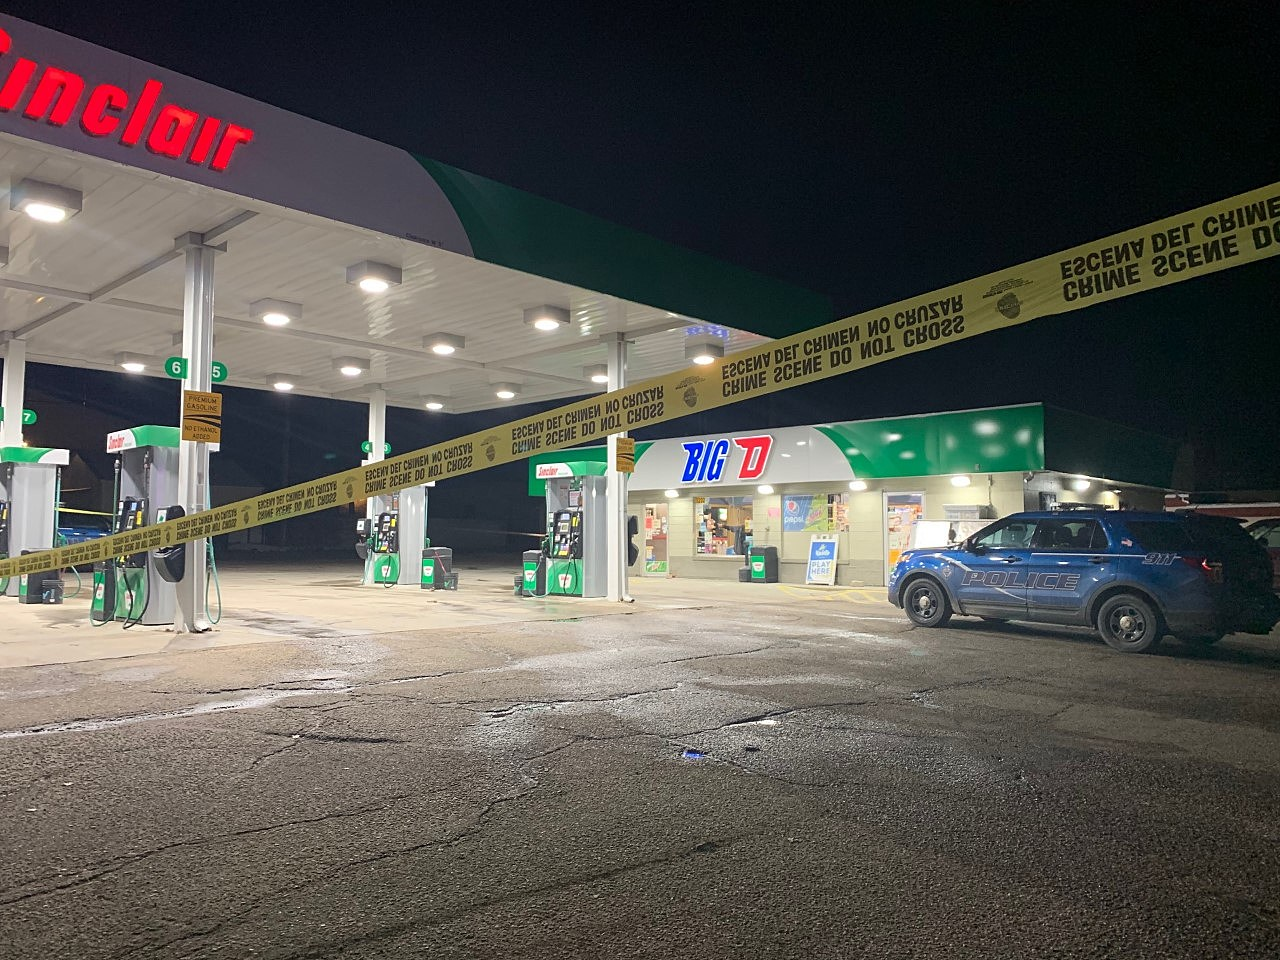 Suspect in Casper Gas Station Robberies Arrested in New York